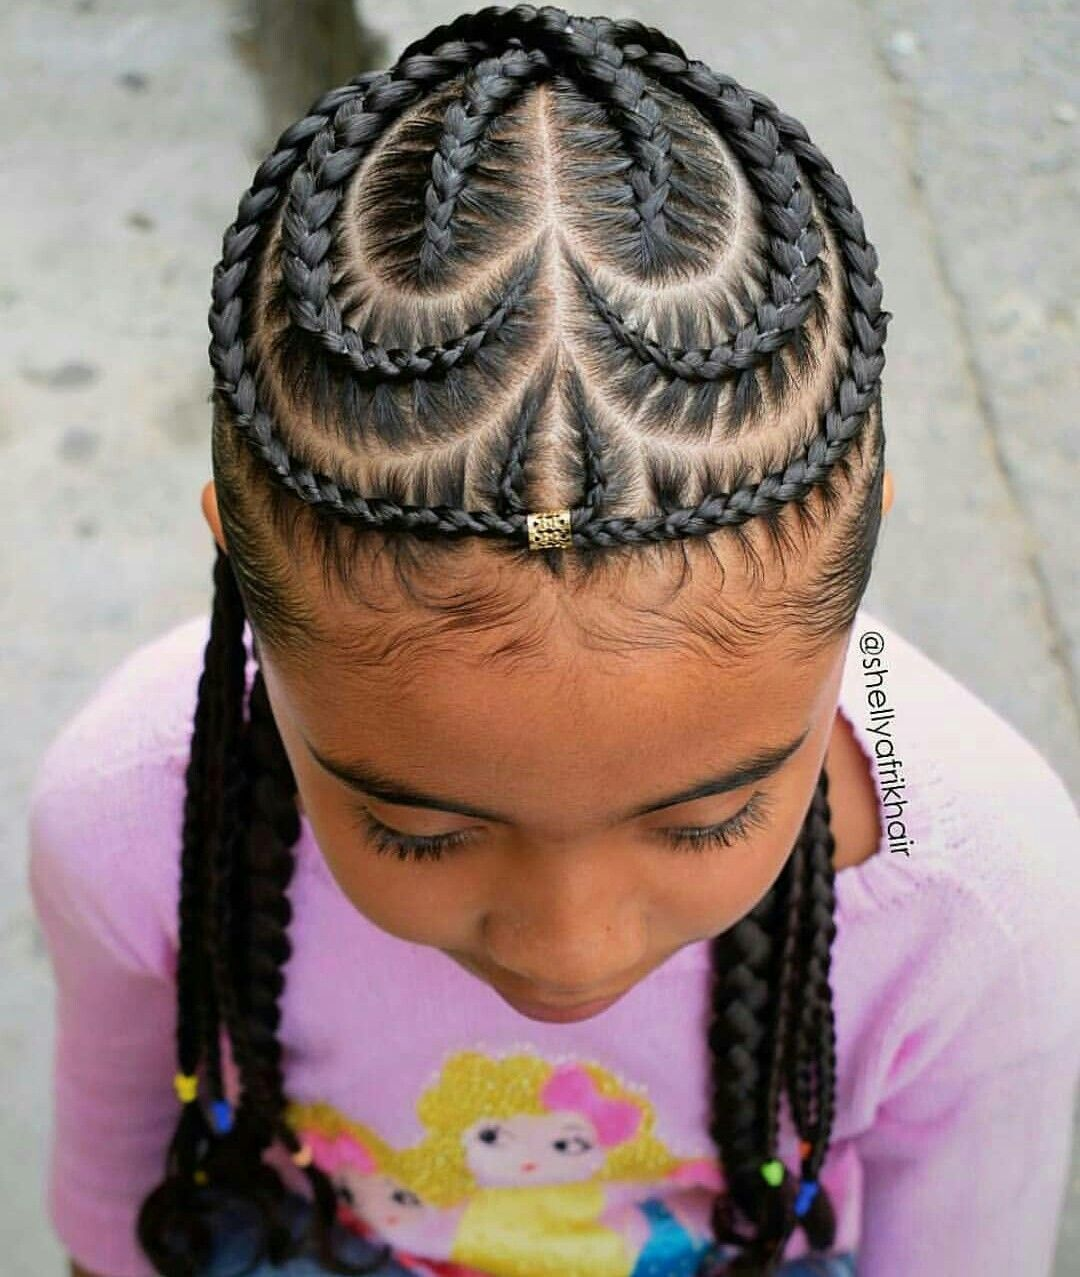 Follow Thelavishbee For More Interesting Pins Lil Girl Hairstyles Kids Braided Hairstyles Kids Hairstyles